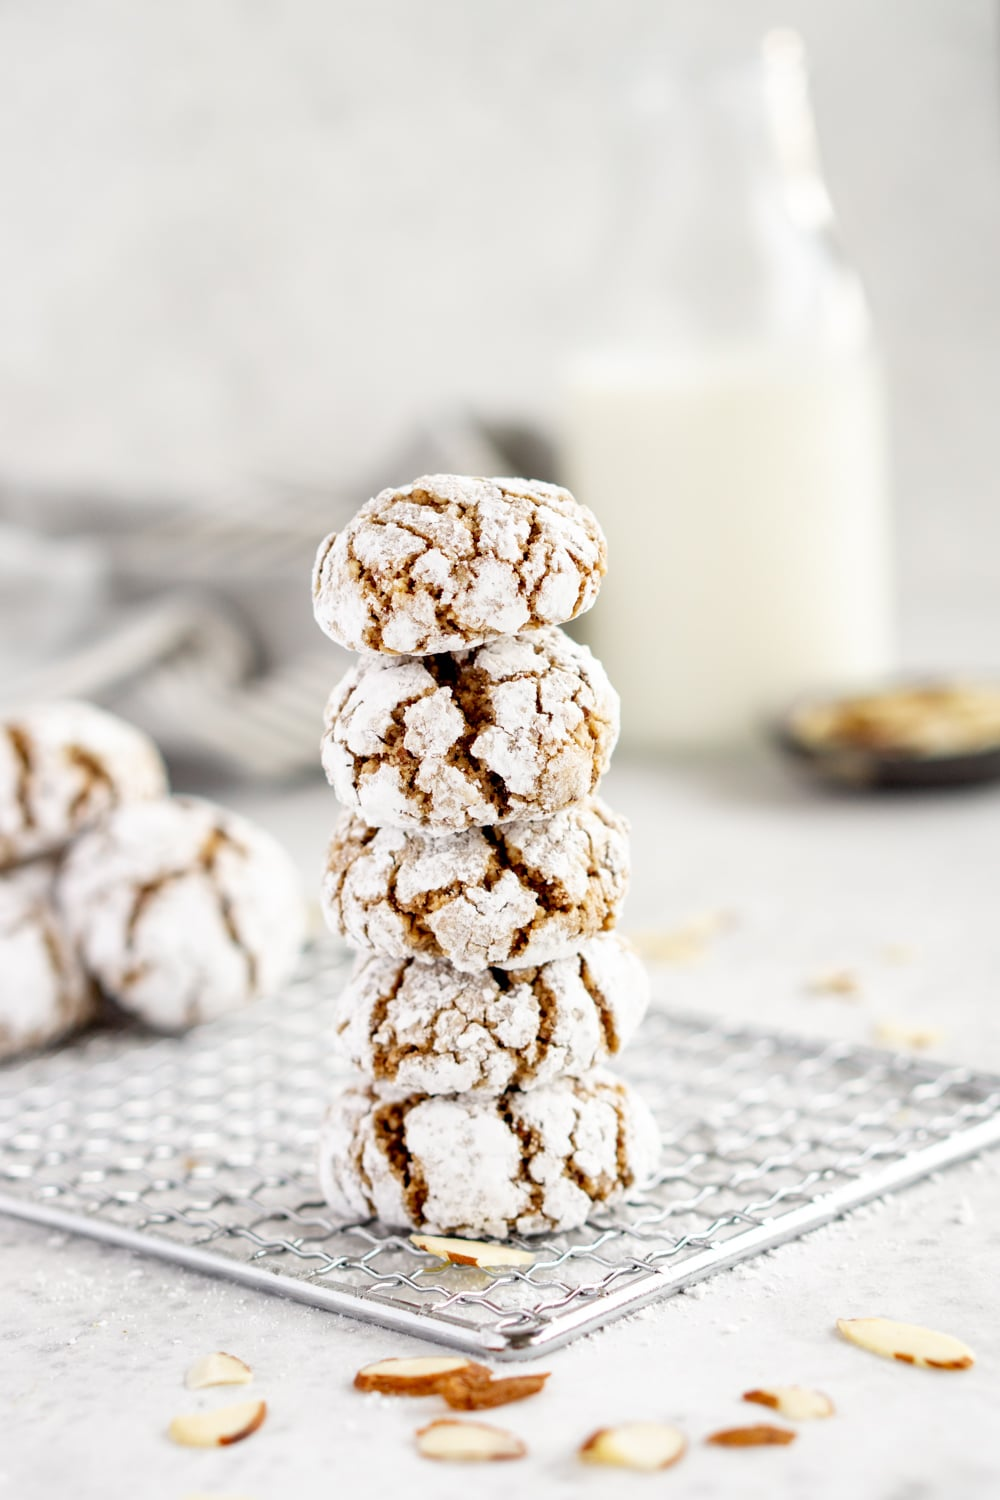 Stacked amaretti cookies on a baking sheet with milk in the background